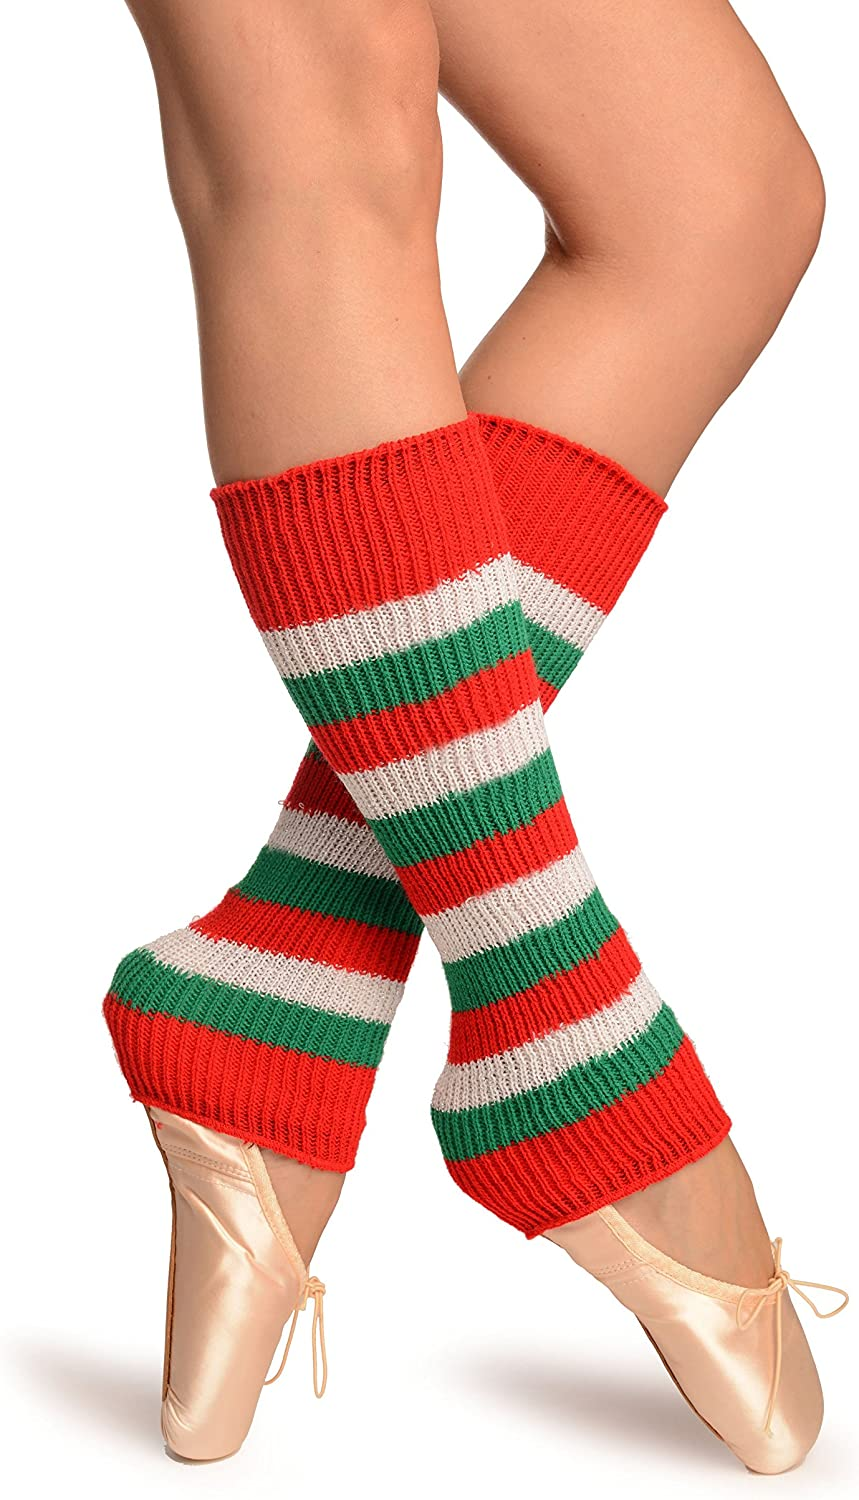 Green, Red And Lurex White Stripes Dance/Ballet Leg/Arm Warmers - Multicoloured Striped Leg Warmers